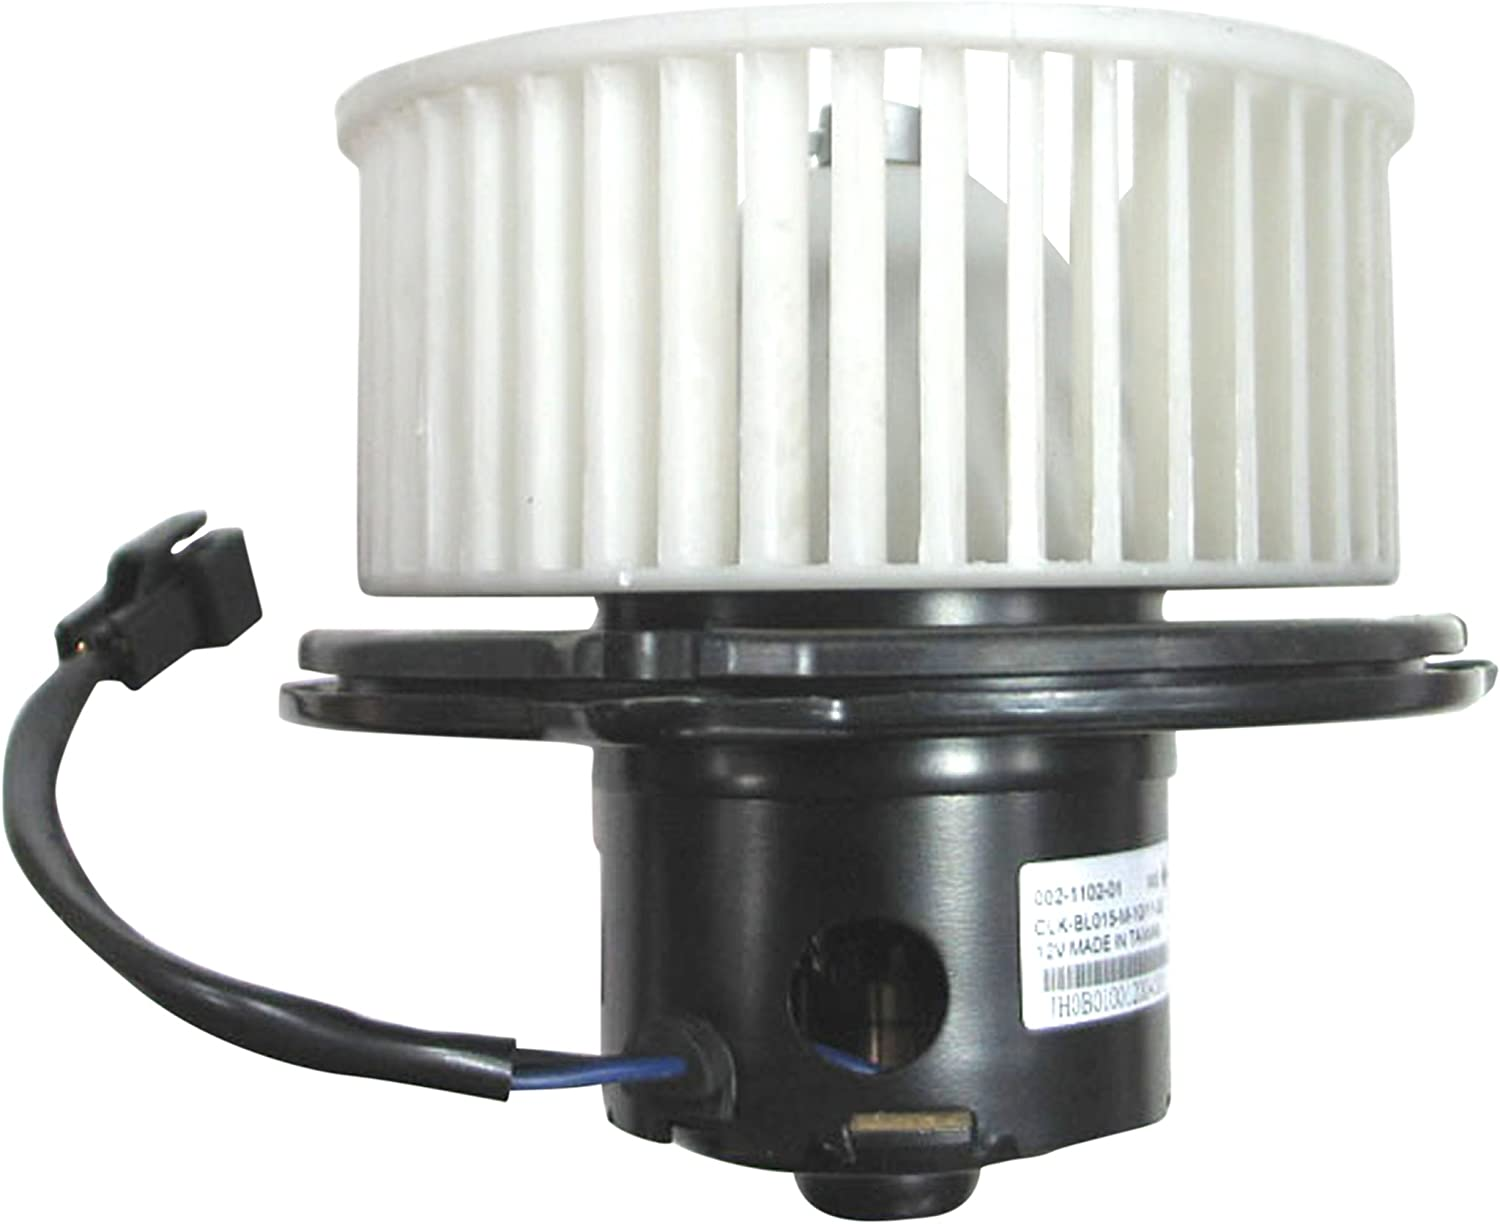 DEPO 333-58012-000 Replacement HVAC Heater Assembly This product is an aftermarket product. It is not created or sold by the OE car company